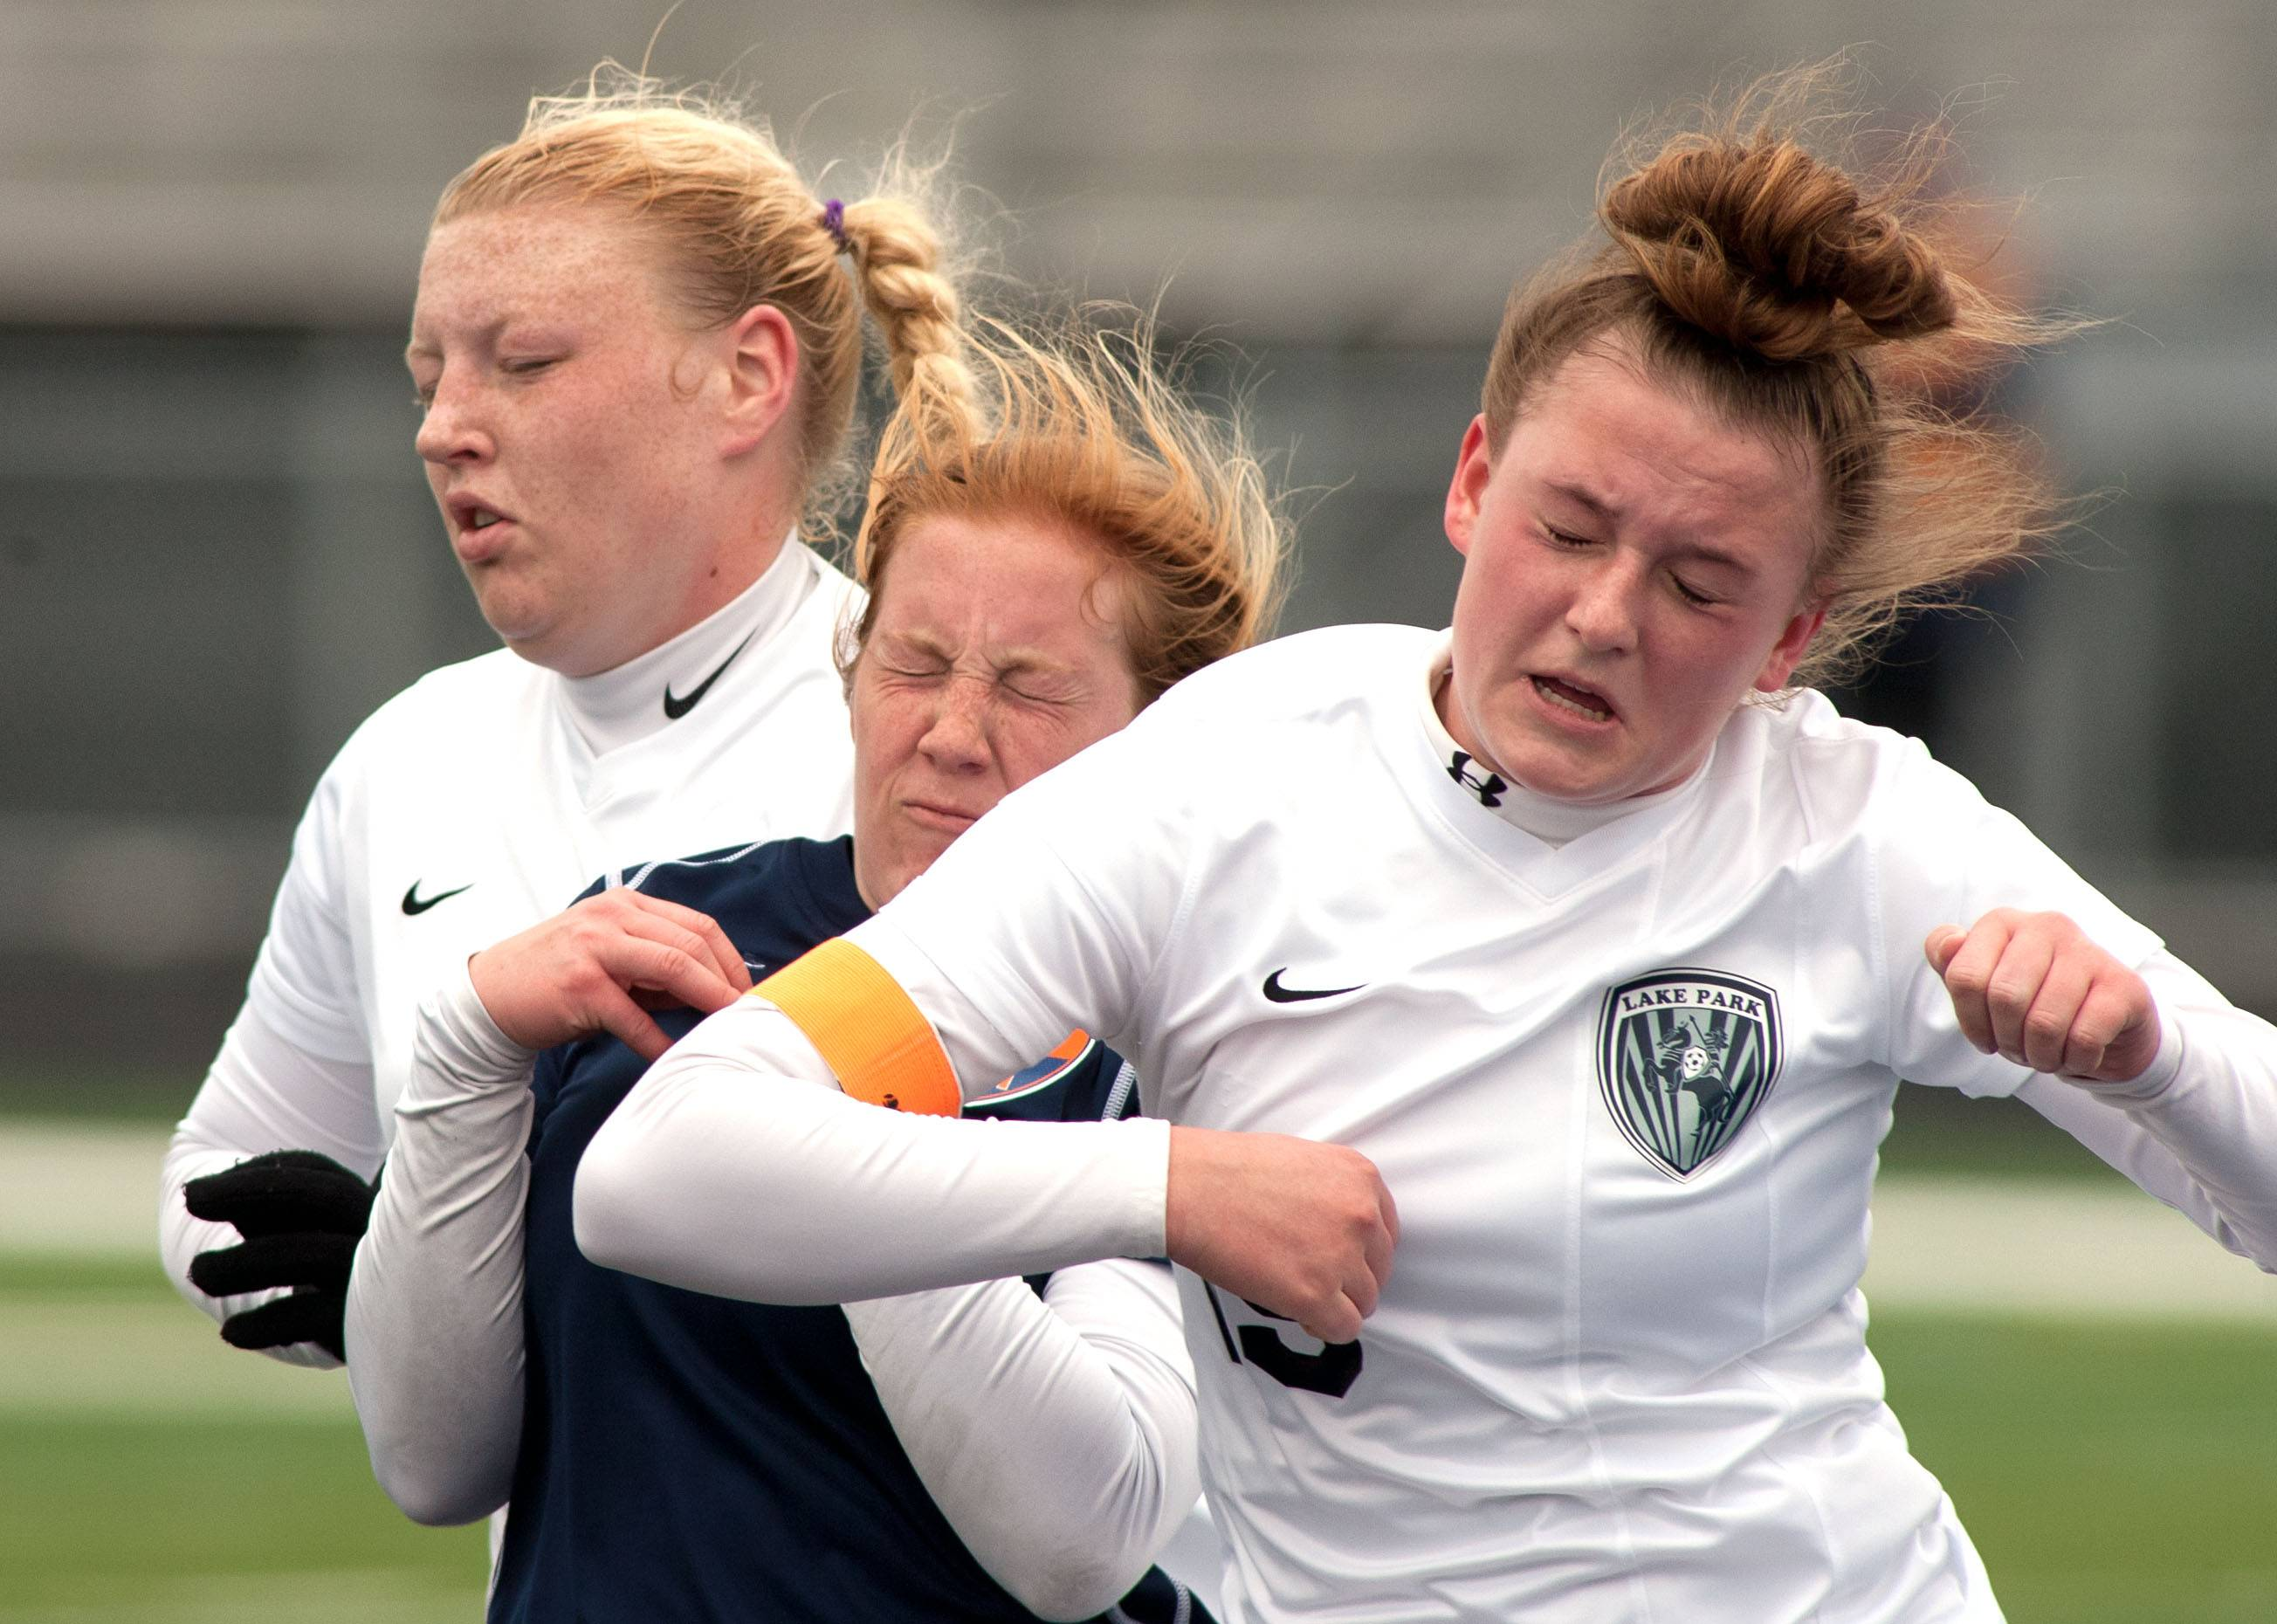 Buffalo Grove's Kelli Zickert, center, battles Lake Park's Casey Harris, right, during girls soccer action in Roselle.